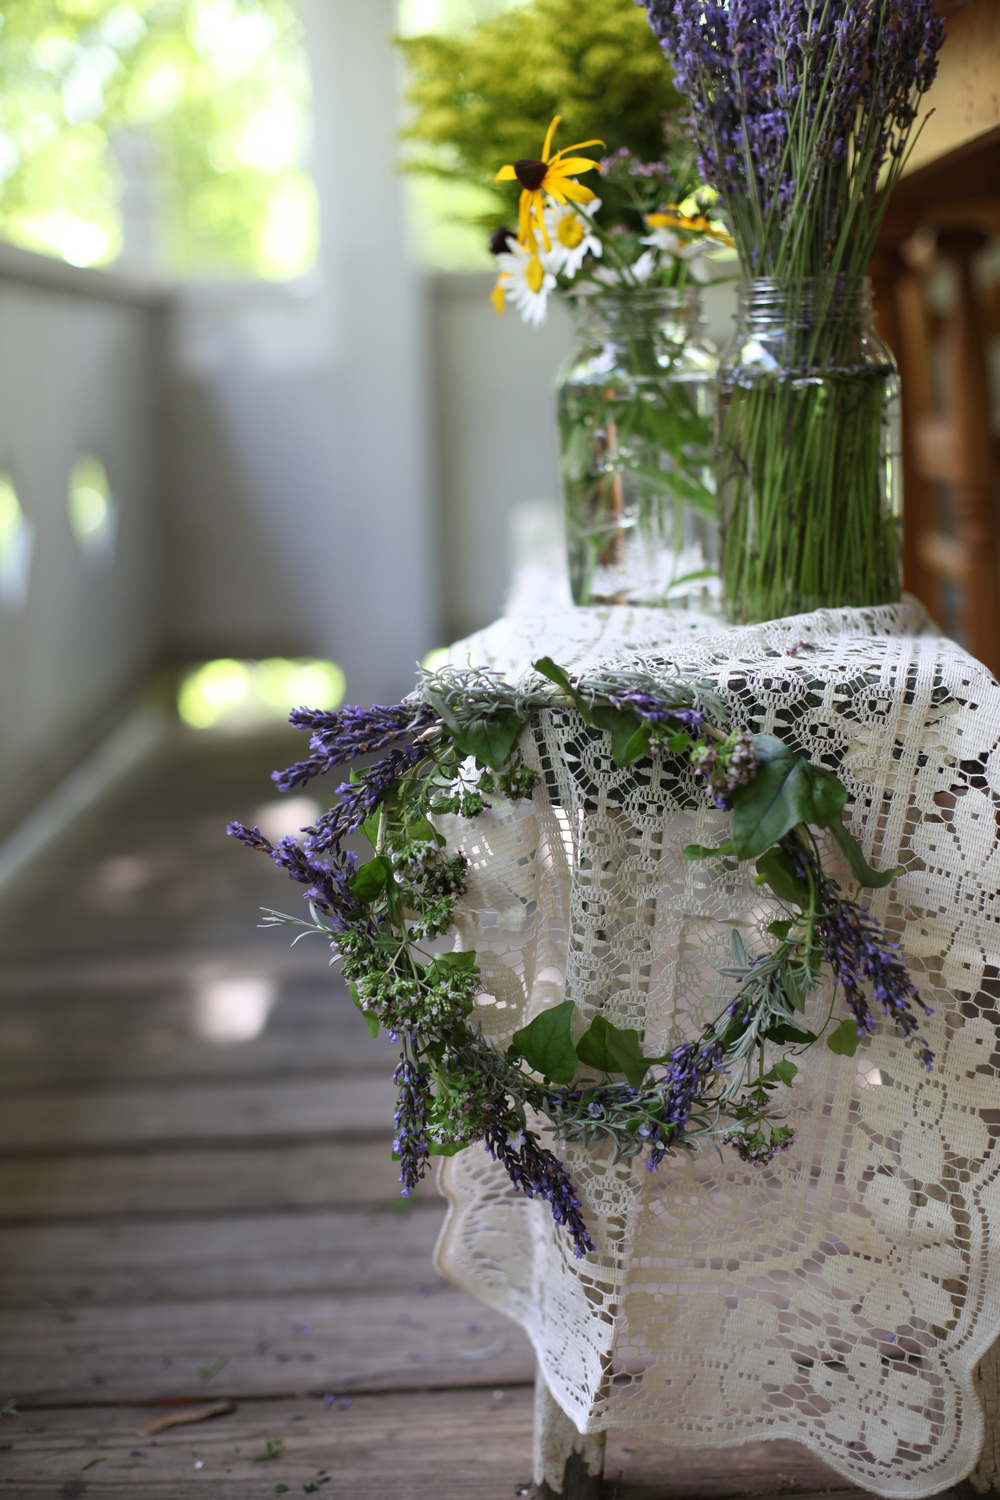 Floral Crown: English Lavender, Spike Lavender, Marjoram Blooms, Ivy, and Donkey Tail